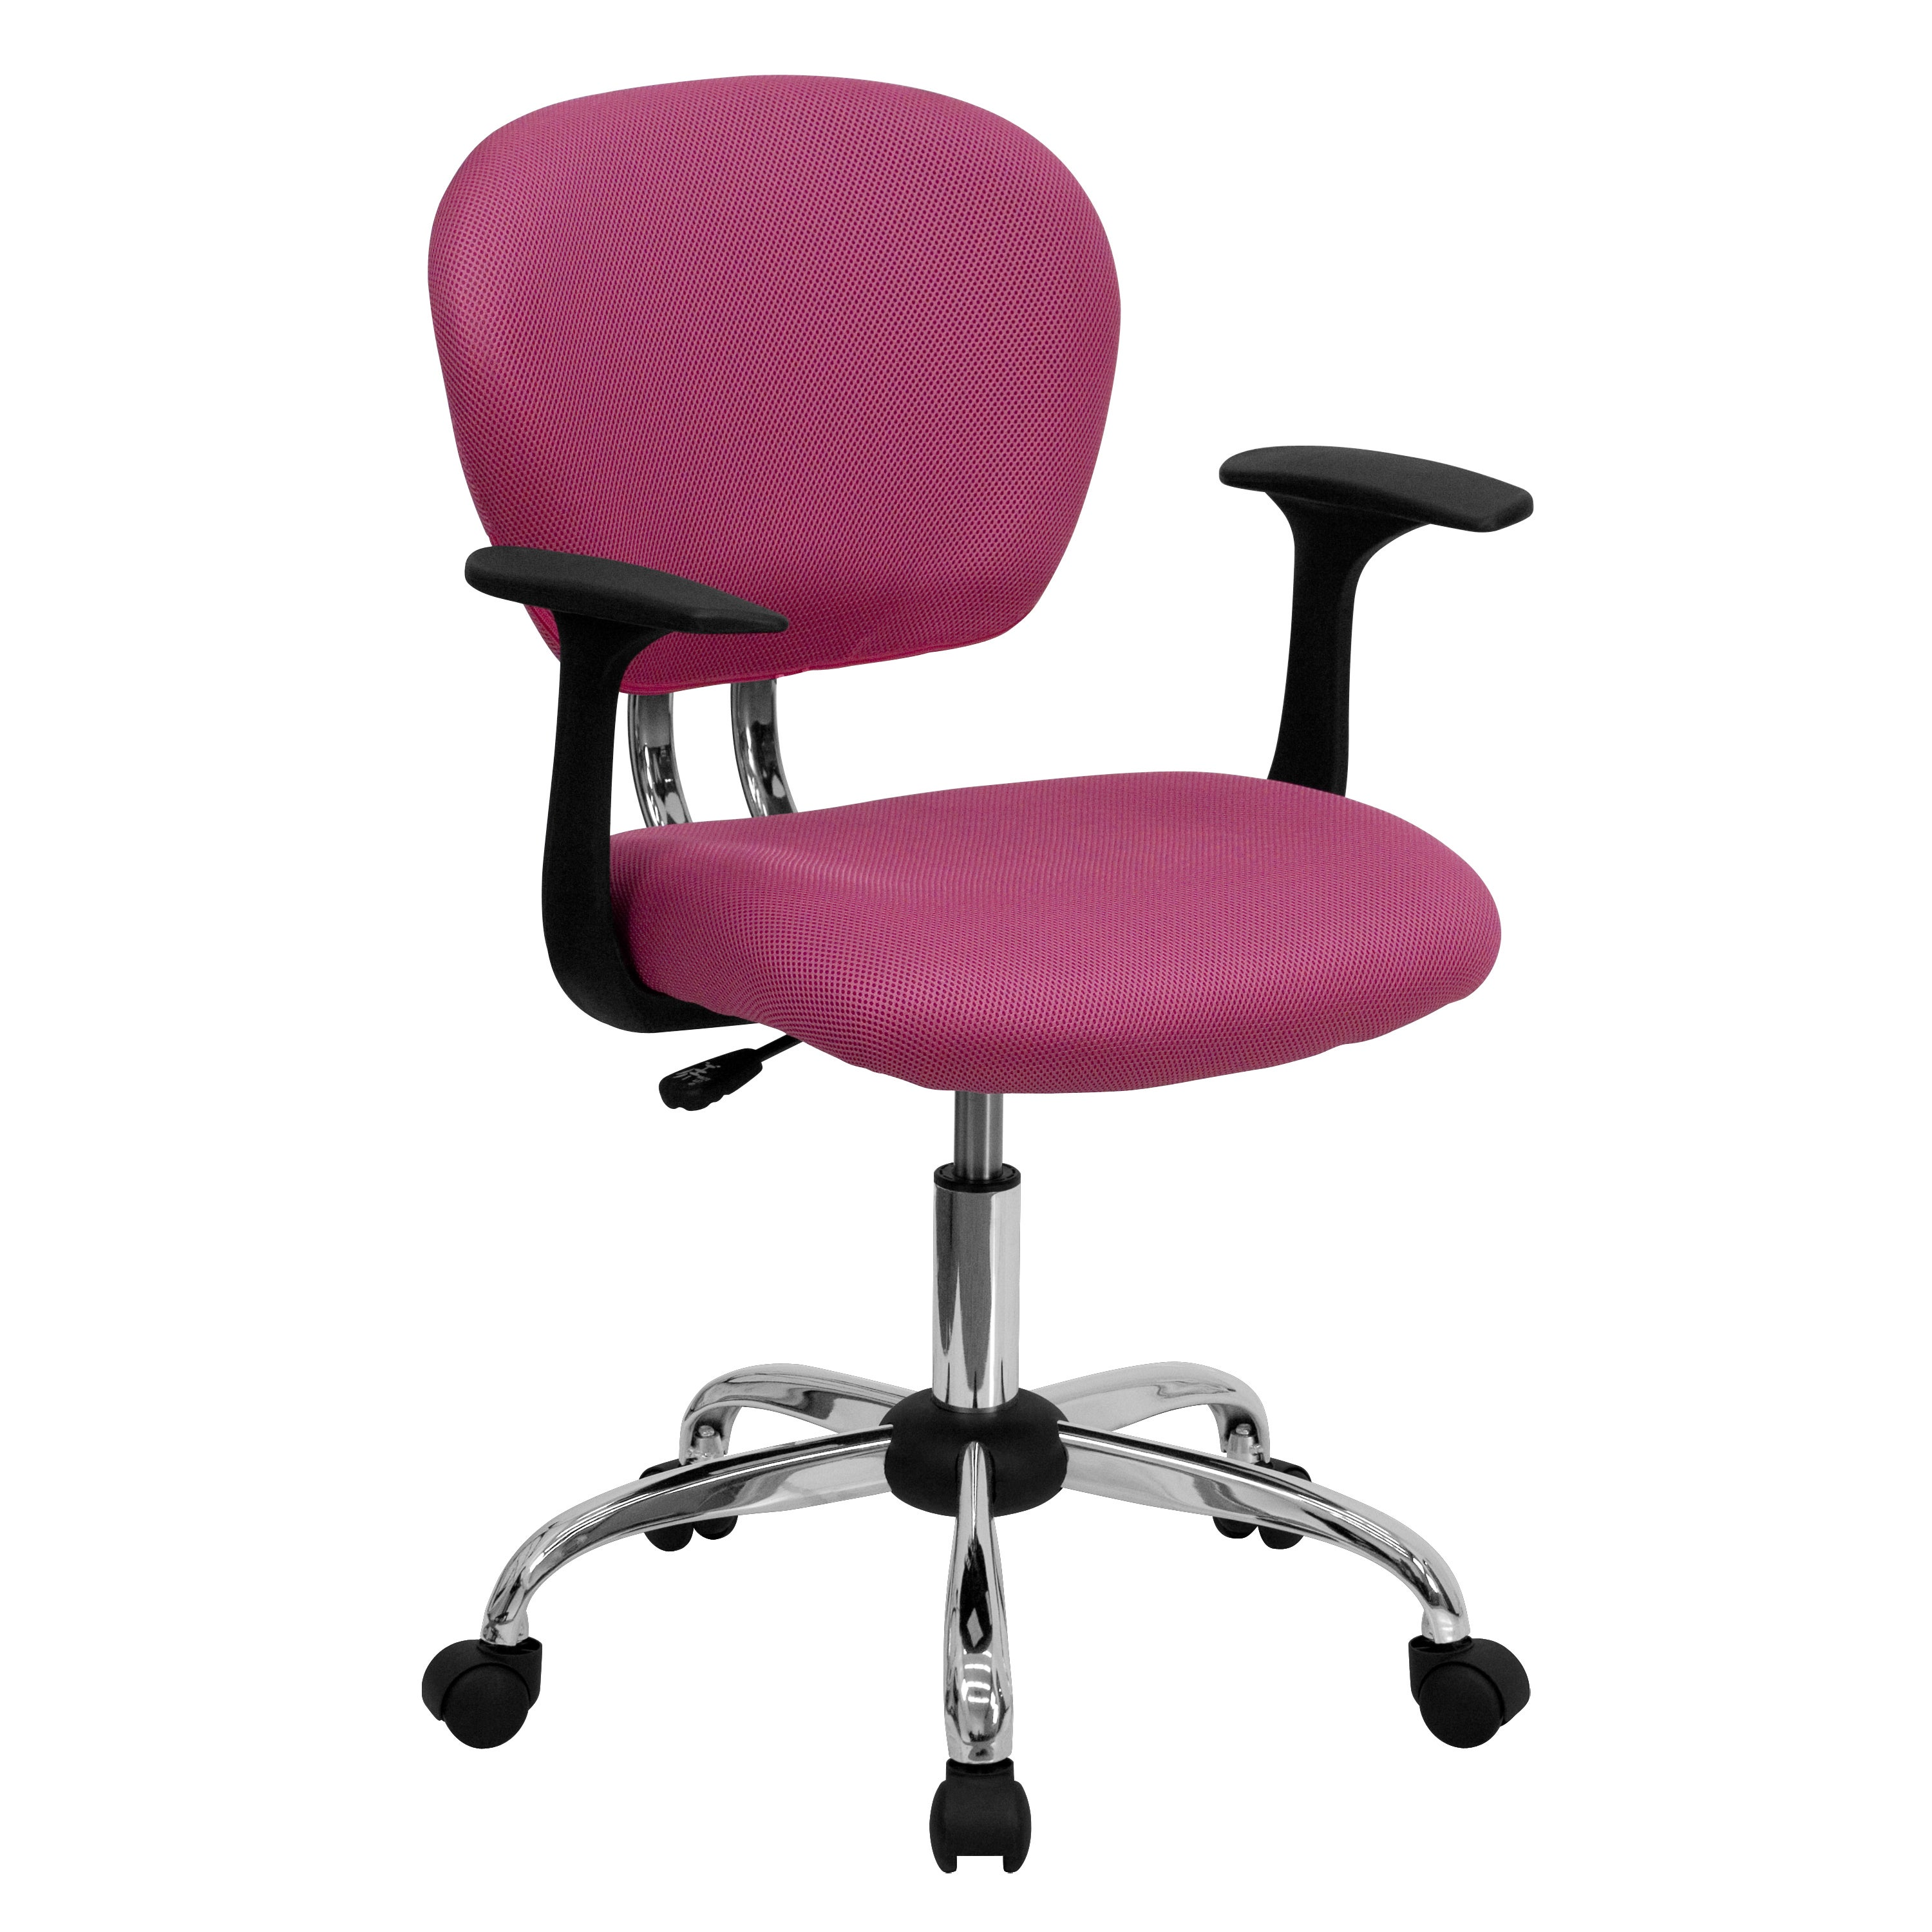 Rigmos Pink Mesh Adjustable Swivel fice Chair with Arms and Chrome